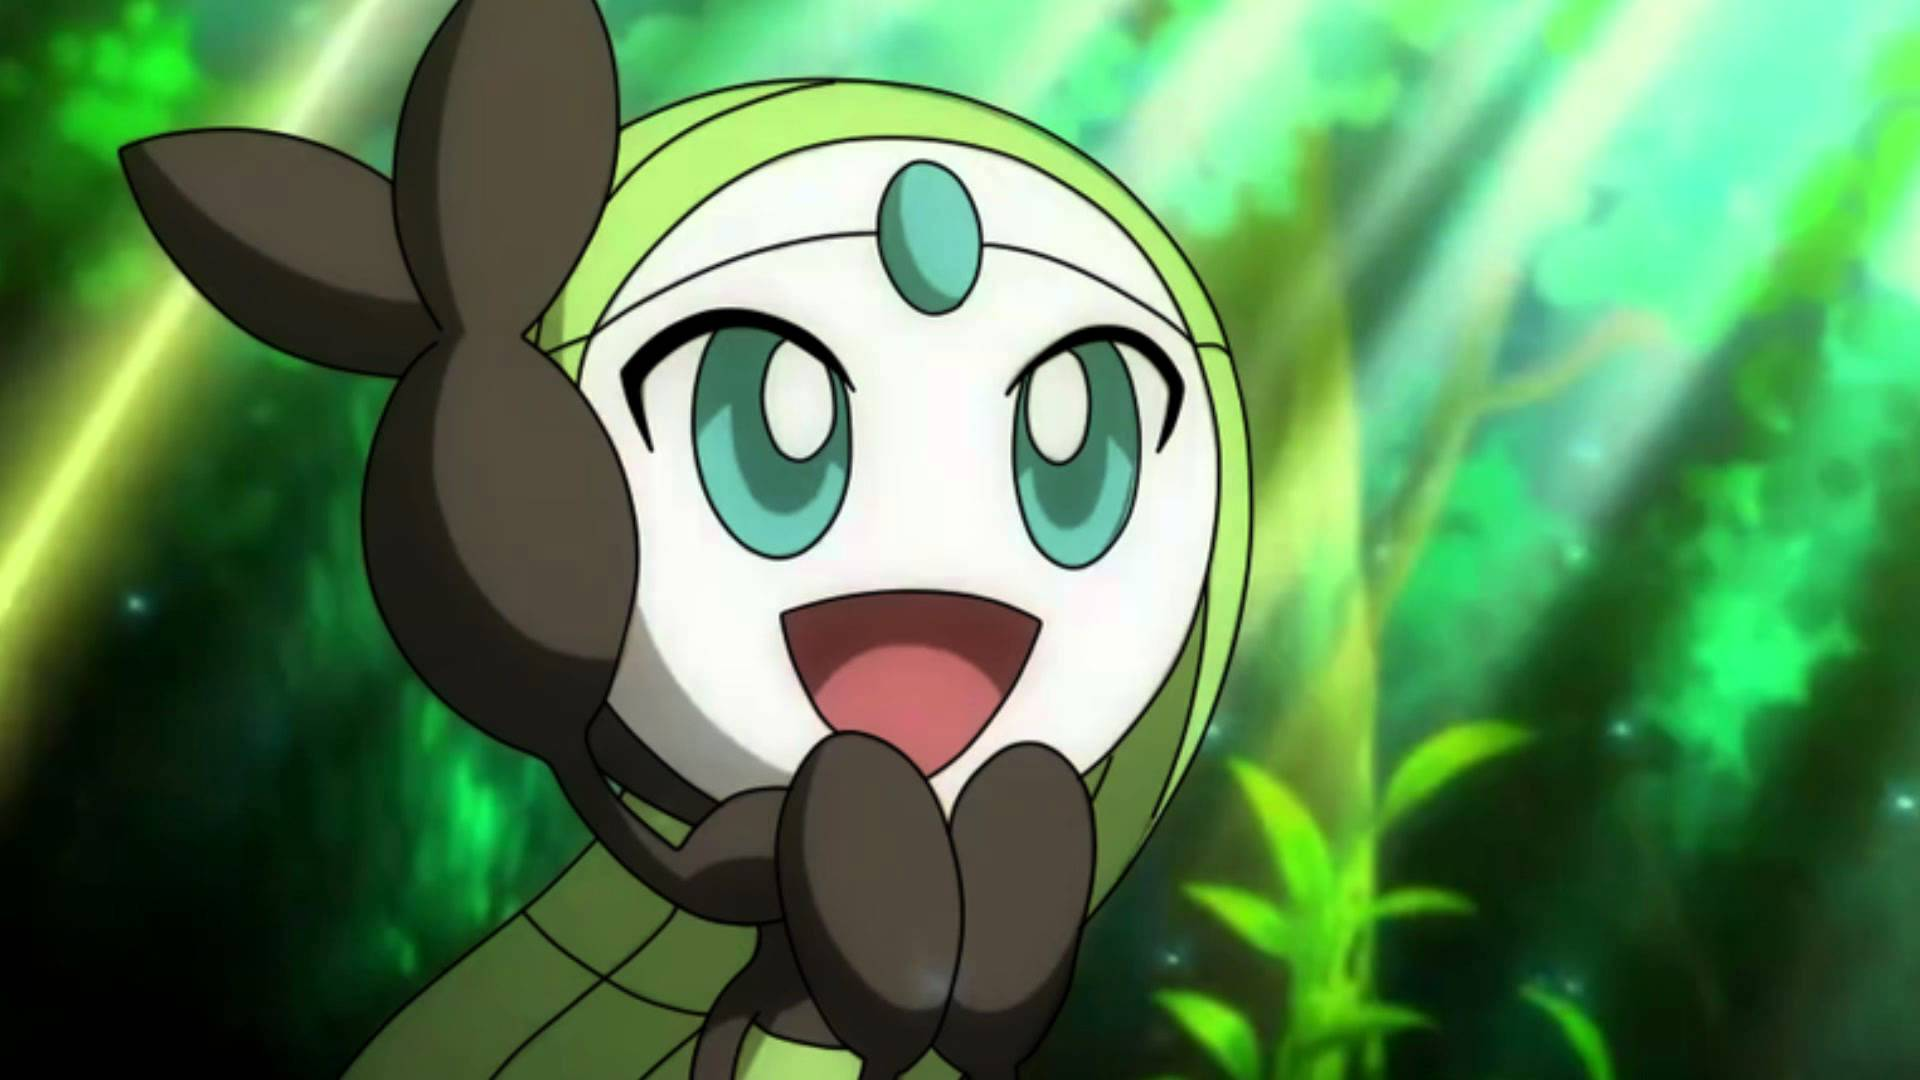 Meloetta - Fastest Pokemon